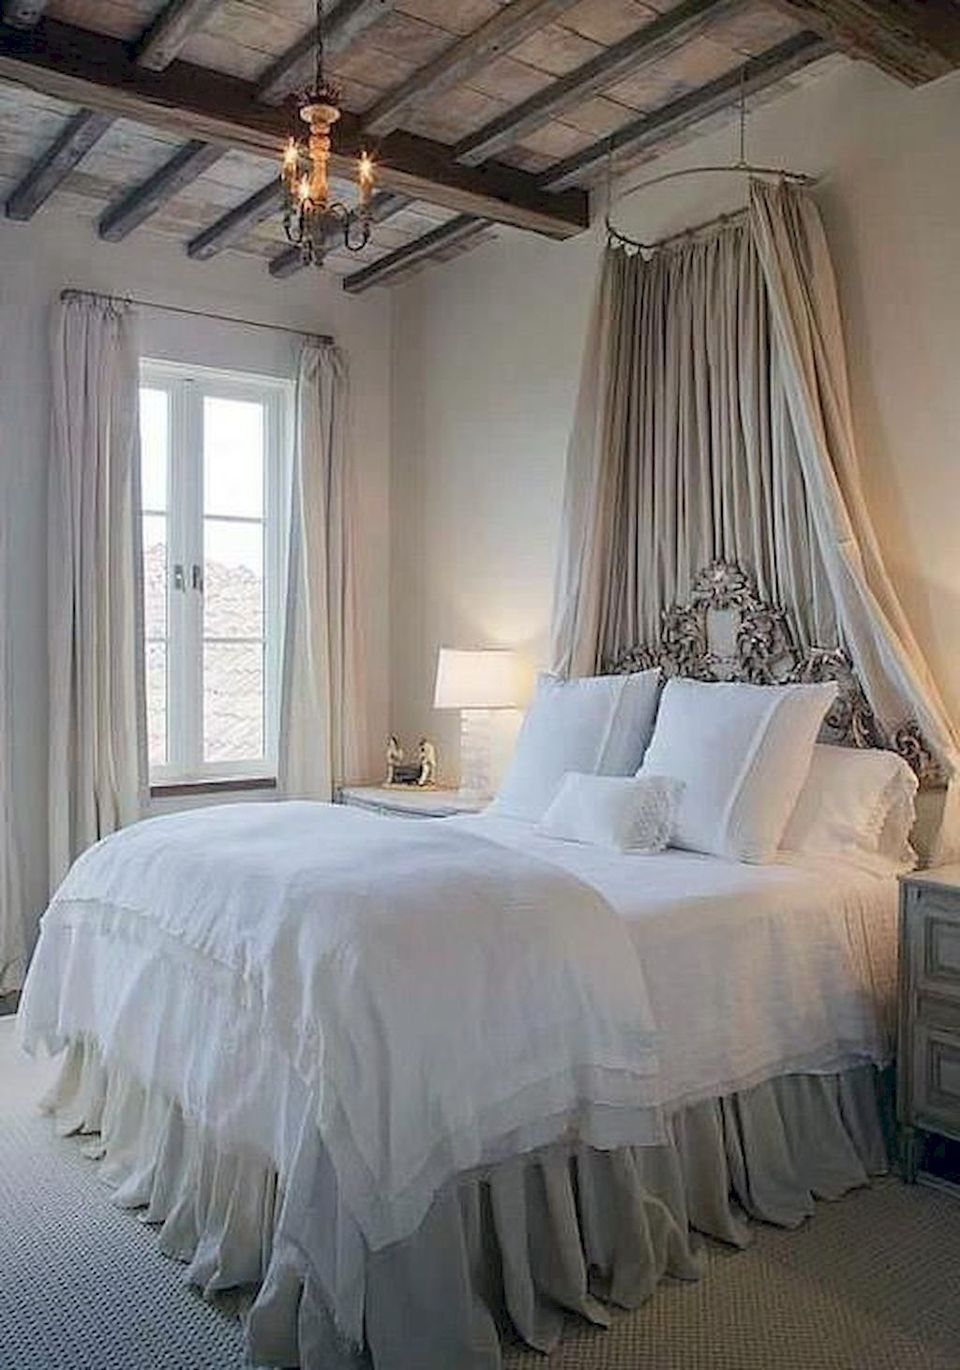 Elegant Romantic Bedrooms: 99 Lovely Romantic Bedroom Decorations Ideas For Couples